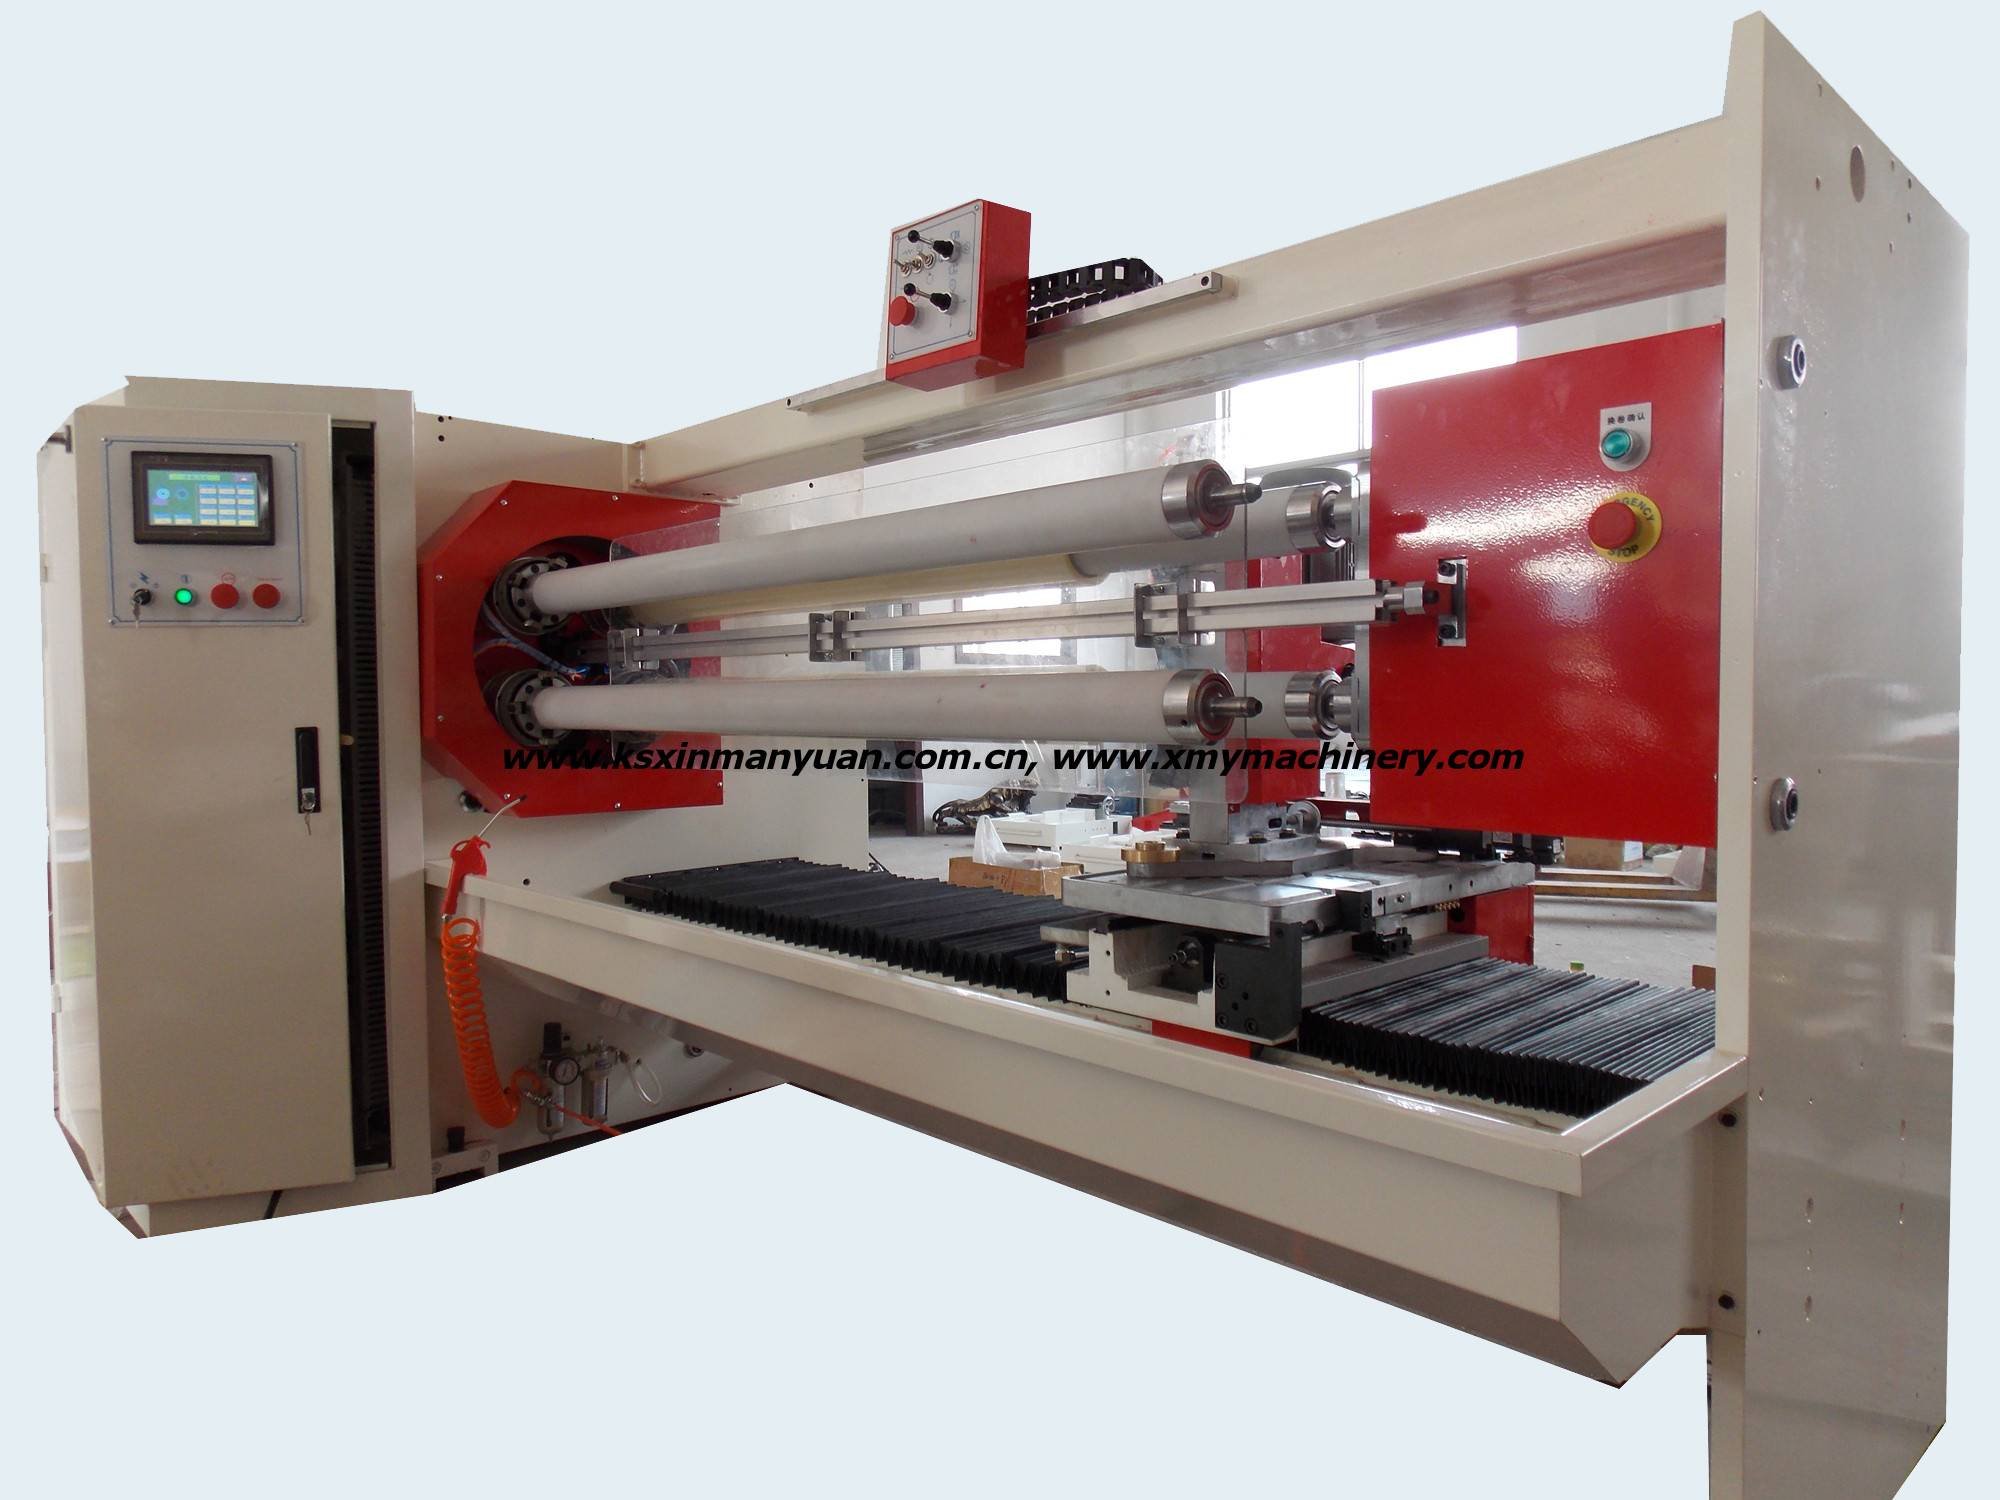 Full automatic four shafts adhesive tape cutting machine for pvc opp double-sided tape (xmy004)